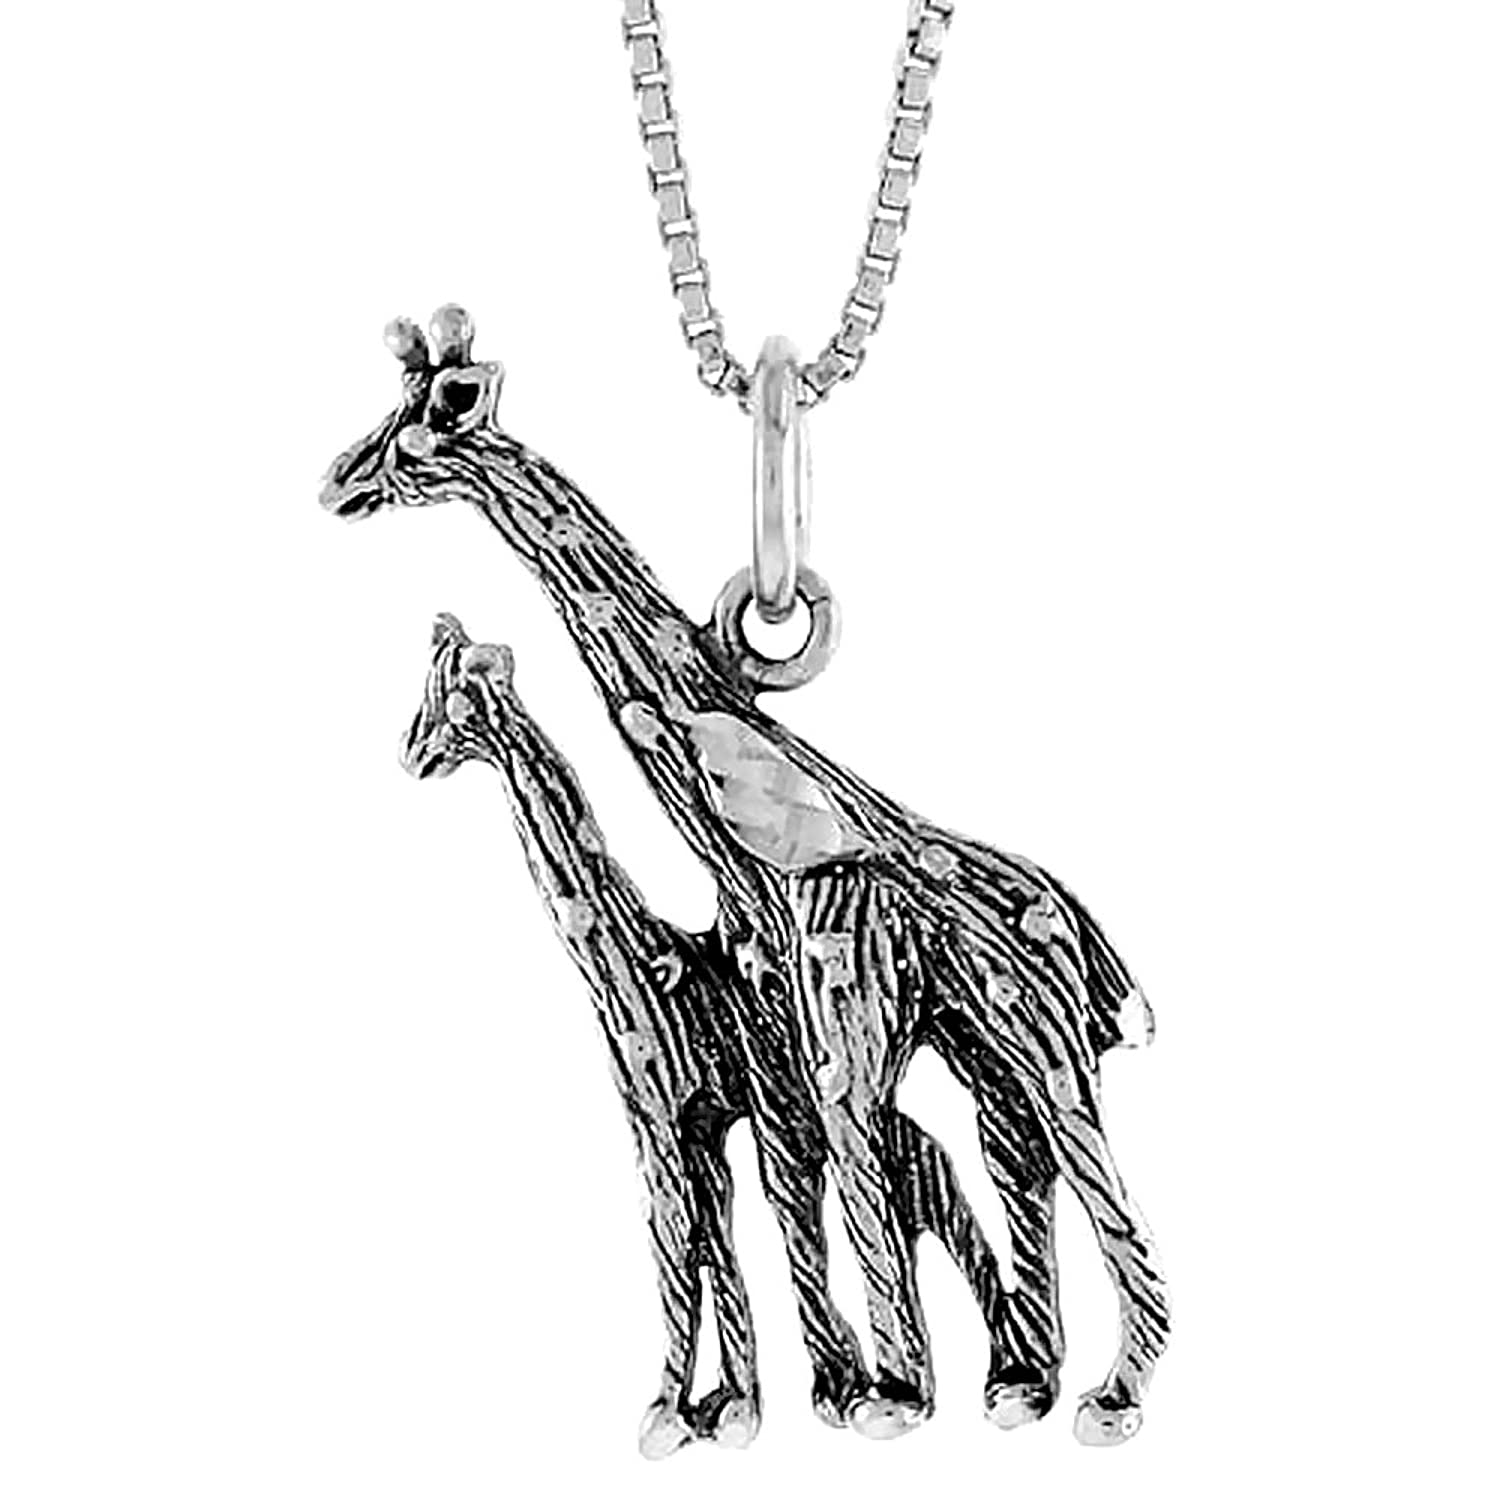 cage lovely giraffe fashion dhgate charm shape plated aimjewelry silver product pendant com from